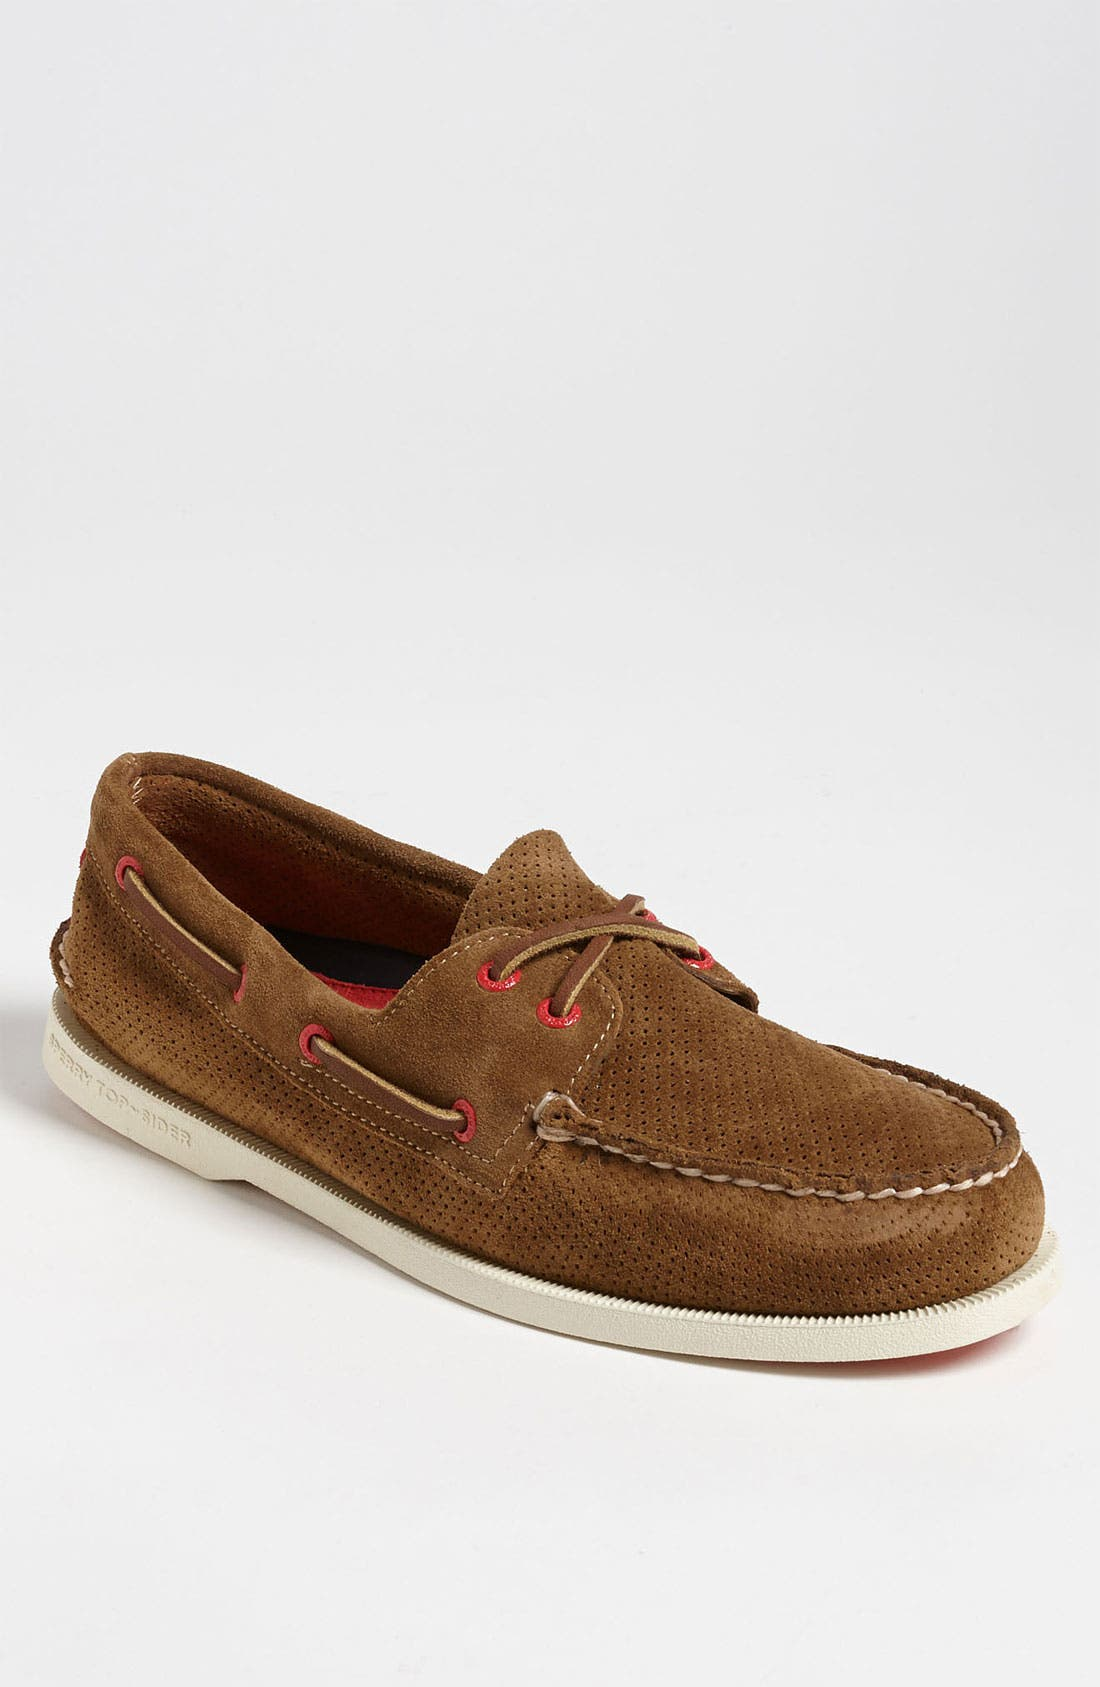 Alternate Image 1 Selected - Sperry Top-Sider® 'Authentic Original' Suede Boat Shoe (Men)